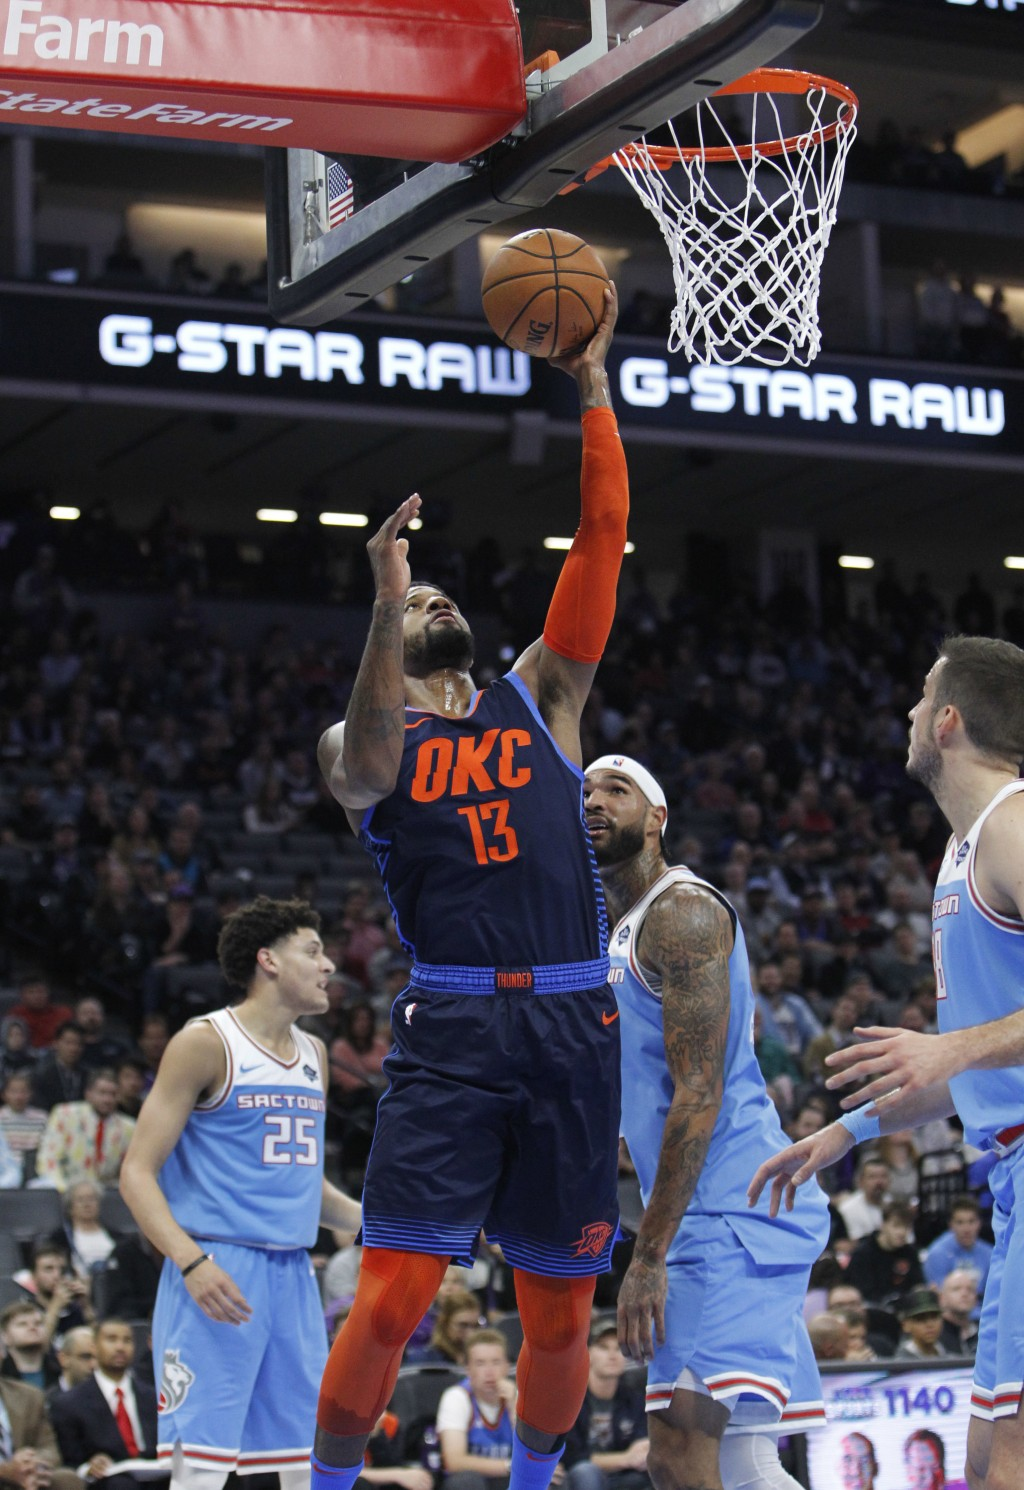 Oklahoma City Thunder forward Paul George (13) breaks away for a basket against the Sacramento Kings during the first half of an NBA basketball game i...